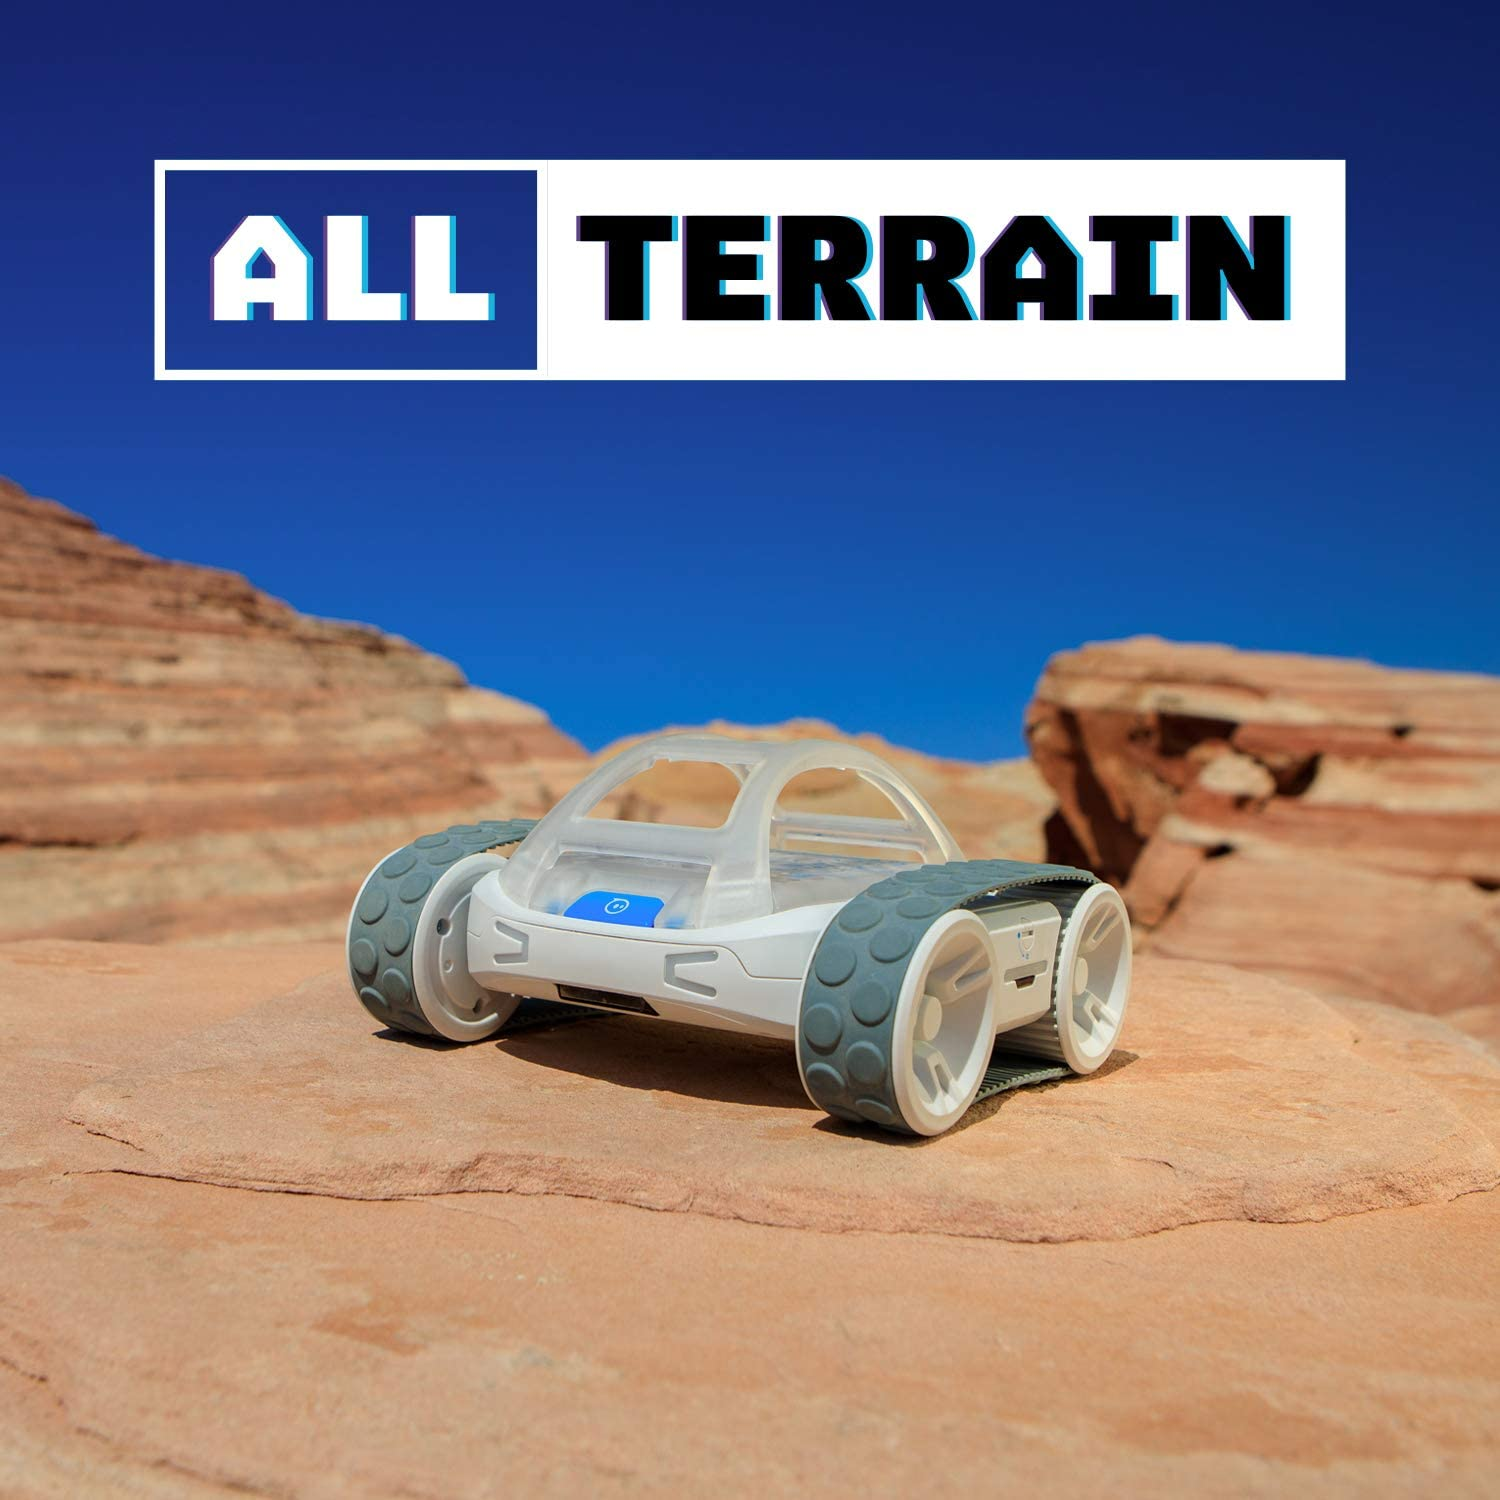 Sphero RVR: All-Terrain Programmable Coding Robot